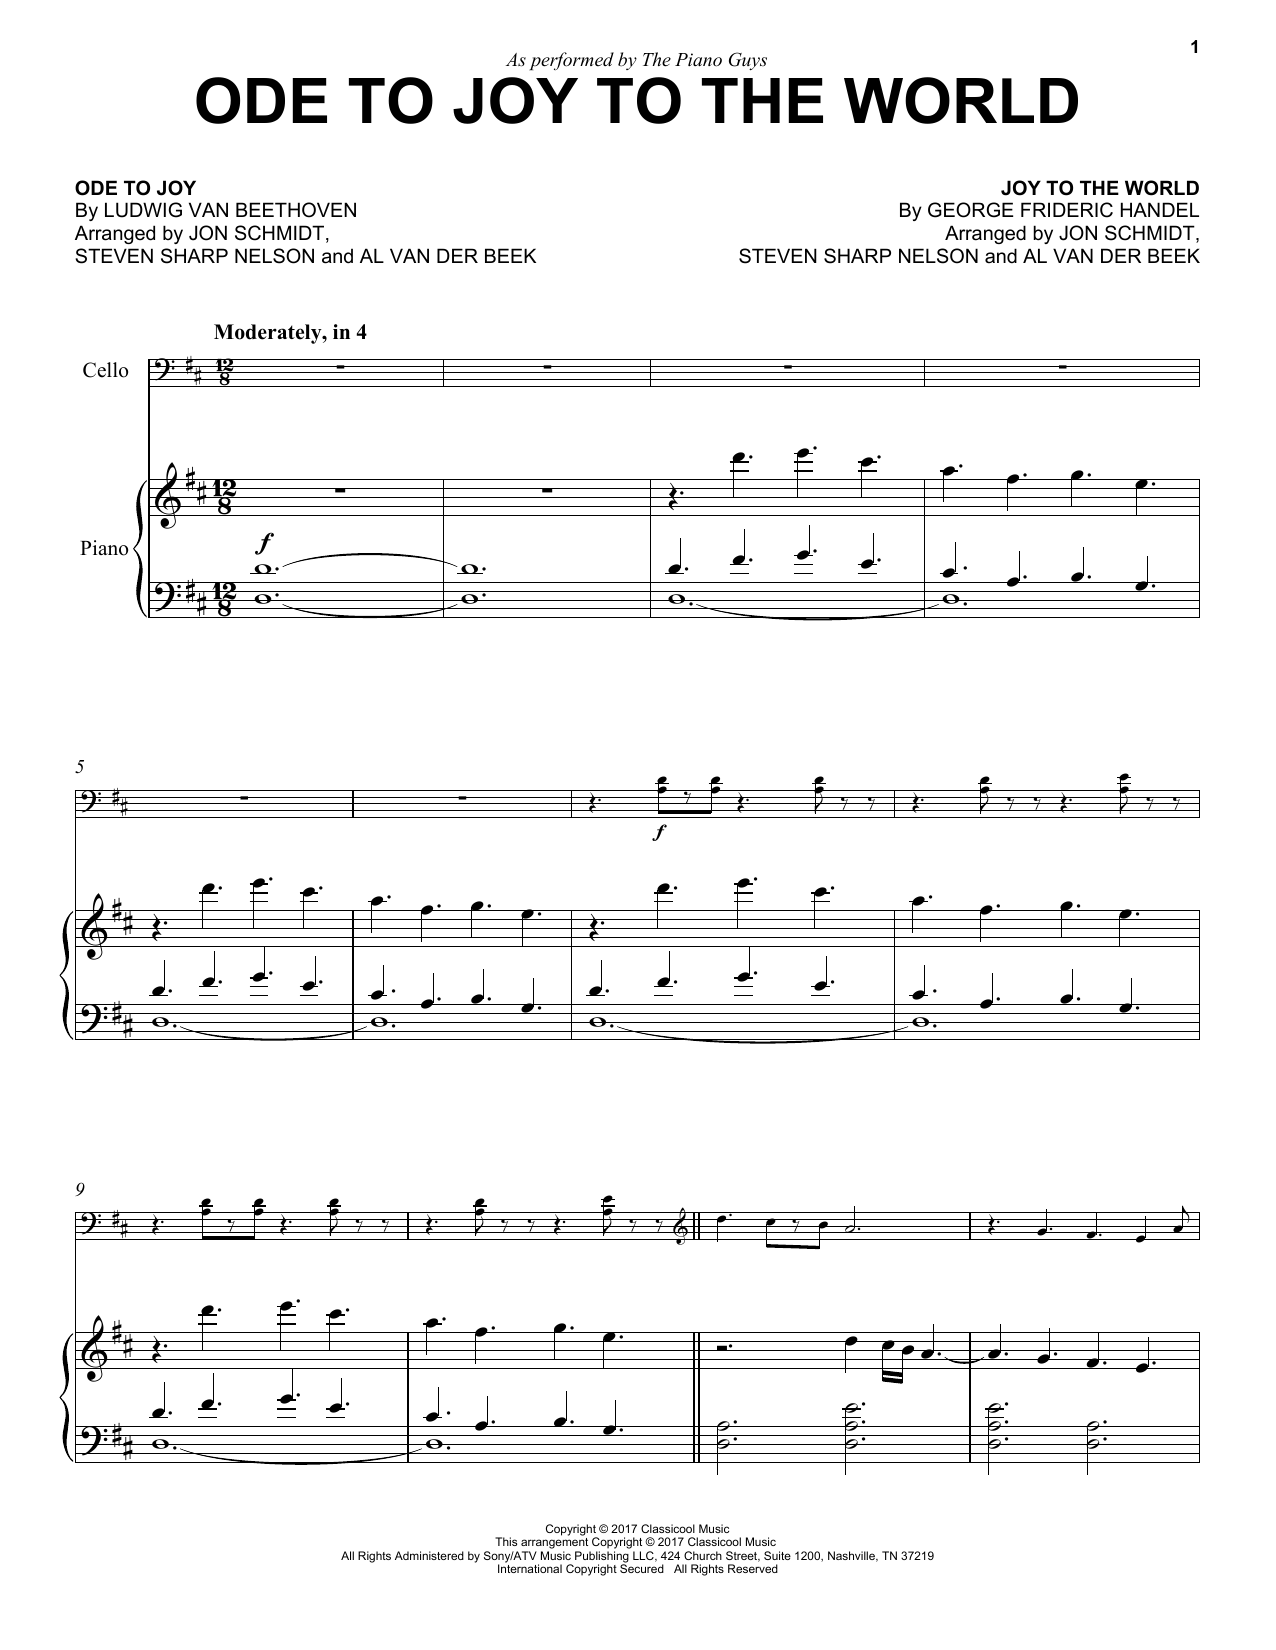 The Piano Guys Ode To Joy to the World sheet music notes and chords